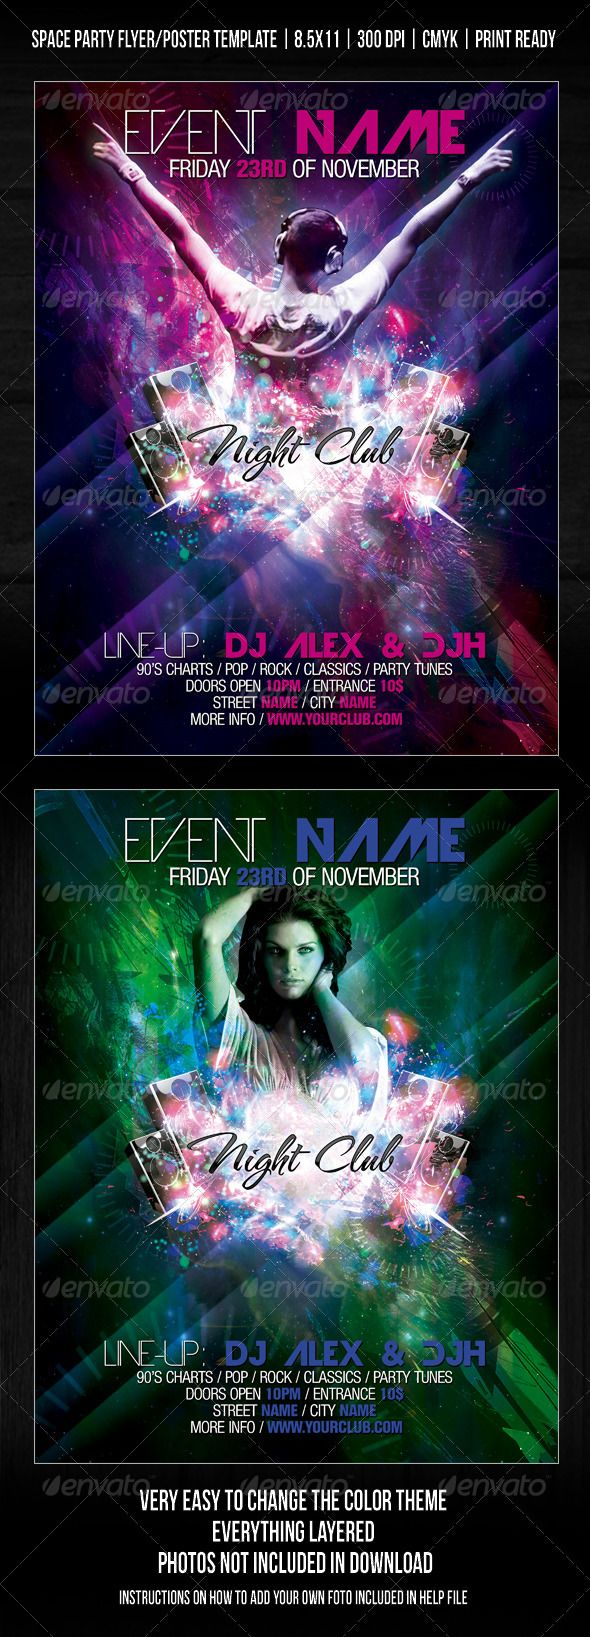 8 5x11 poster design - Night Club Space Party Flyer Poster Template V2